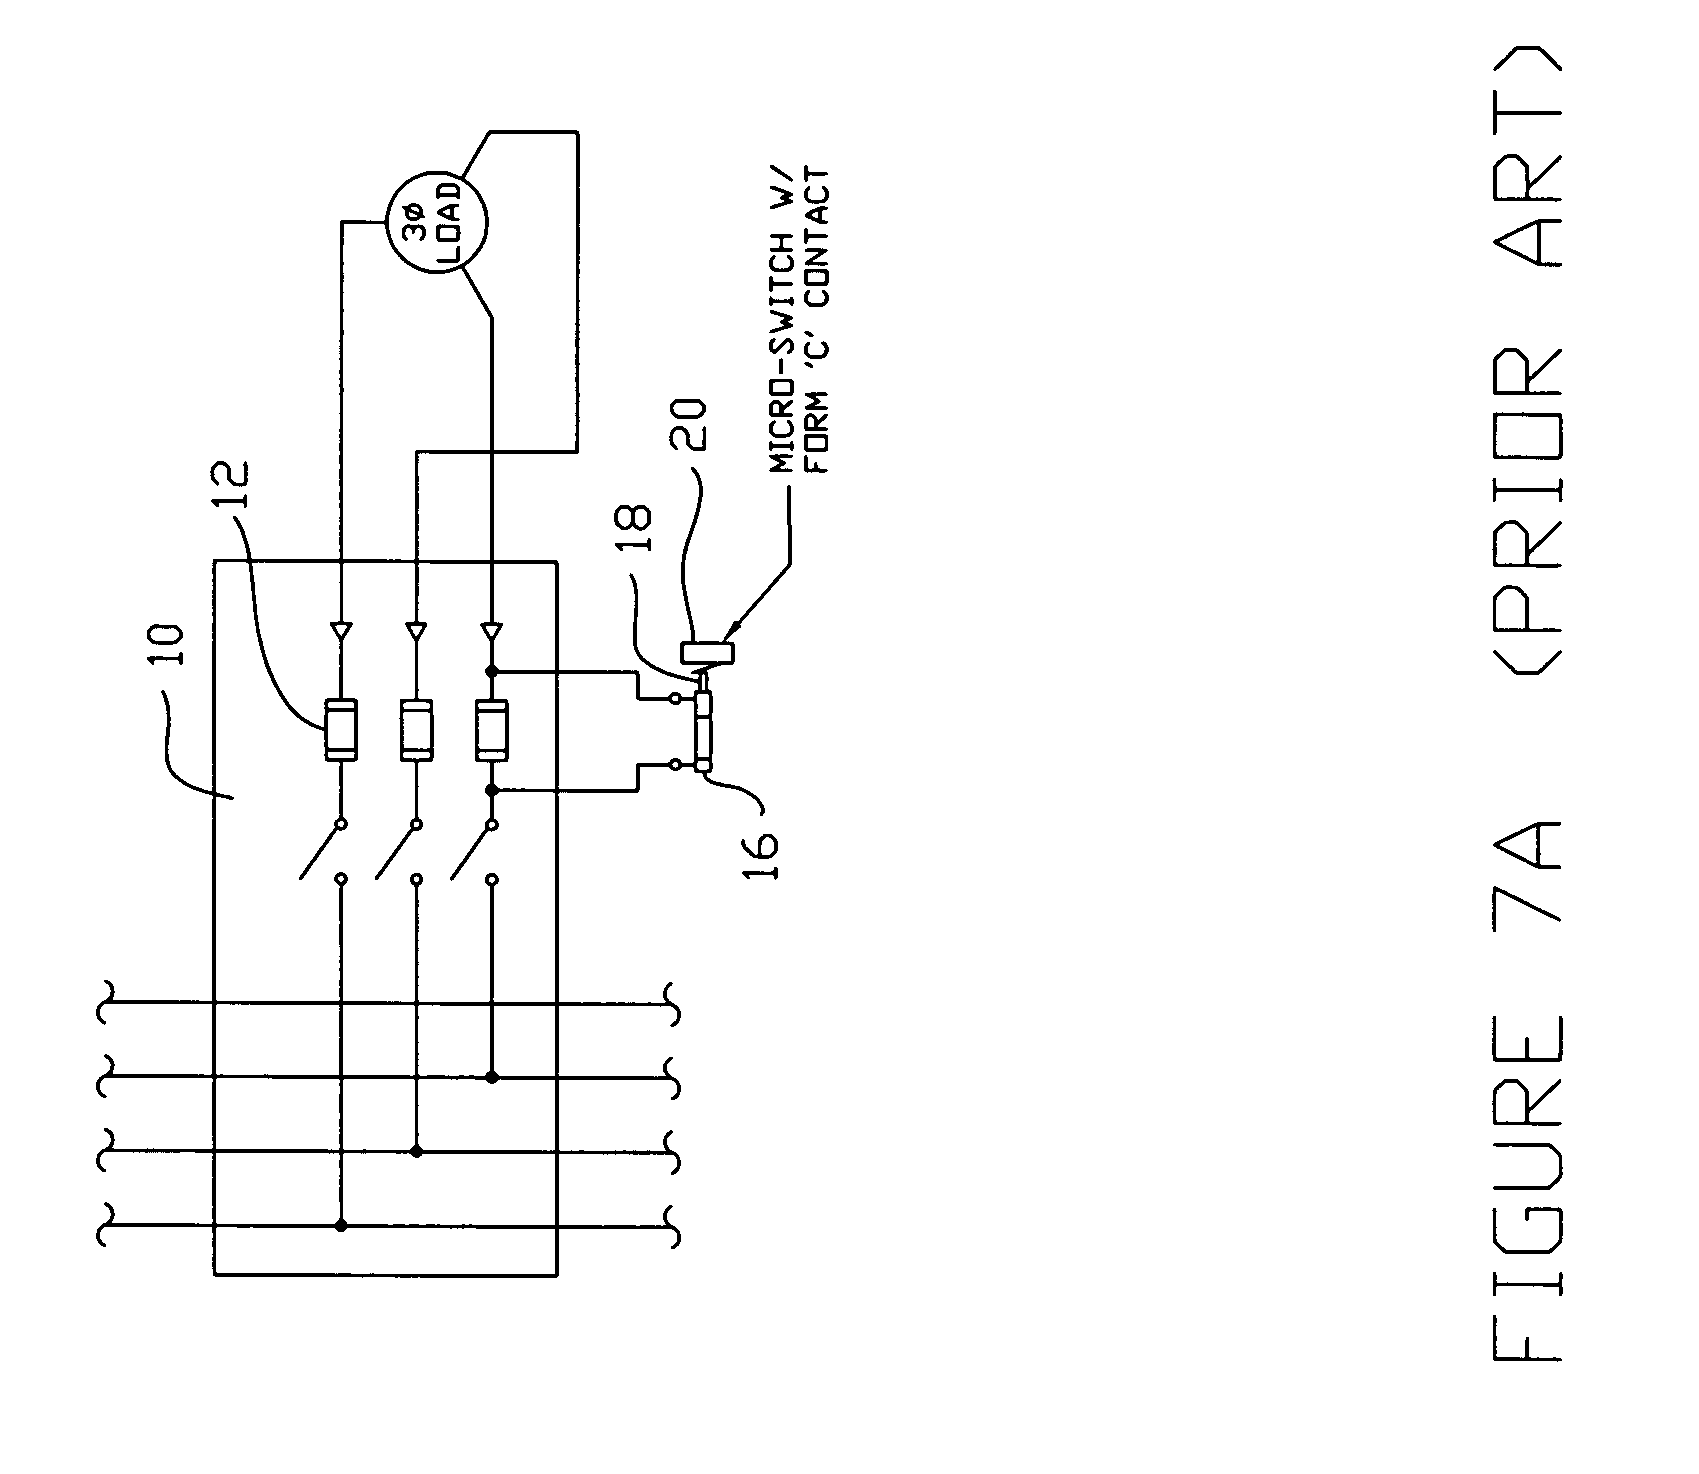 US20050243491A1 20051103 D00007?resize\=665%2C577 form 9s meter wiring diagram form 16s meter socket, 200 amp meter form 9s meter wiring diagram at soozxer.org